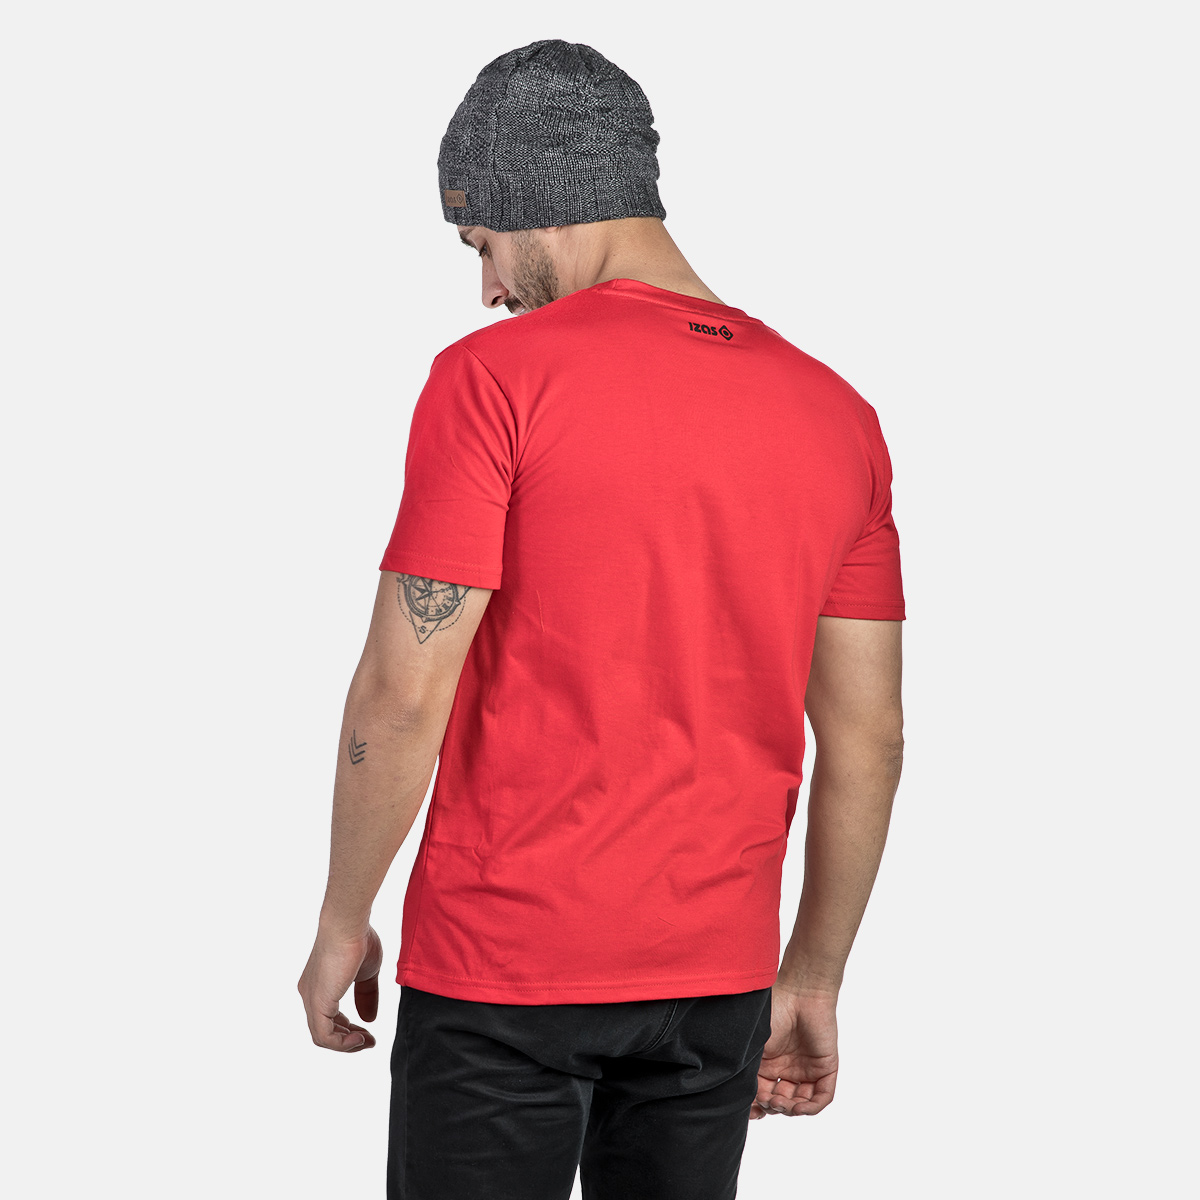 MAN'S AVERY T-SHIRT RED